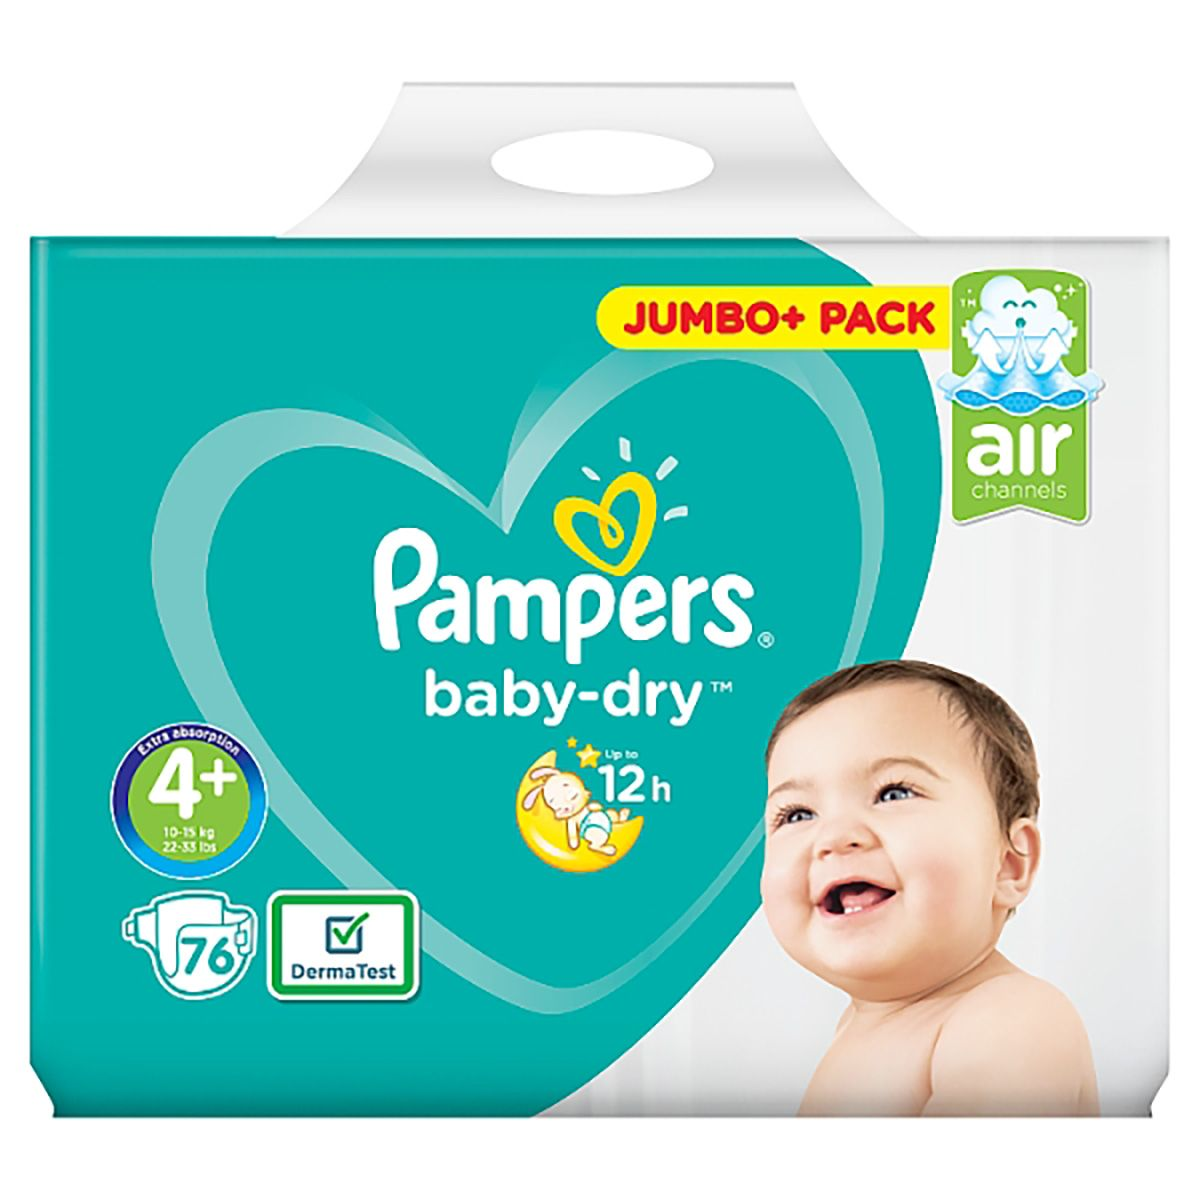 Pampers Baby-Dry Pants Nappy Pants Diaper - Size 4+ Jumbo Pack 76 pcs